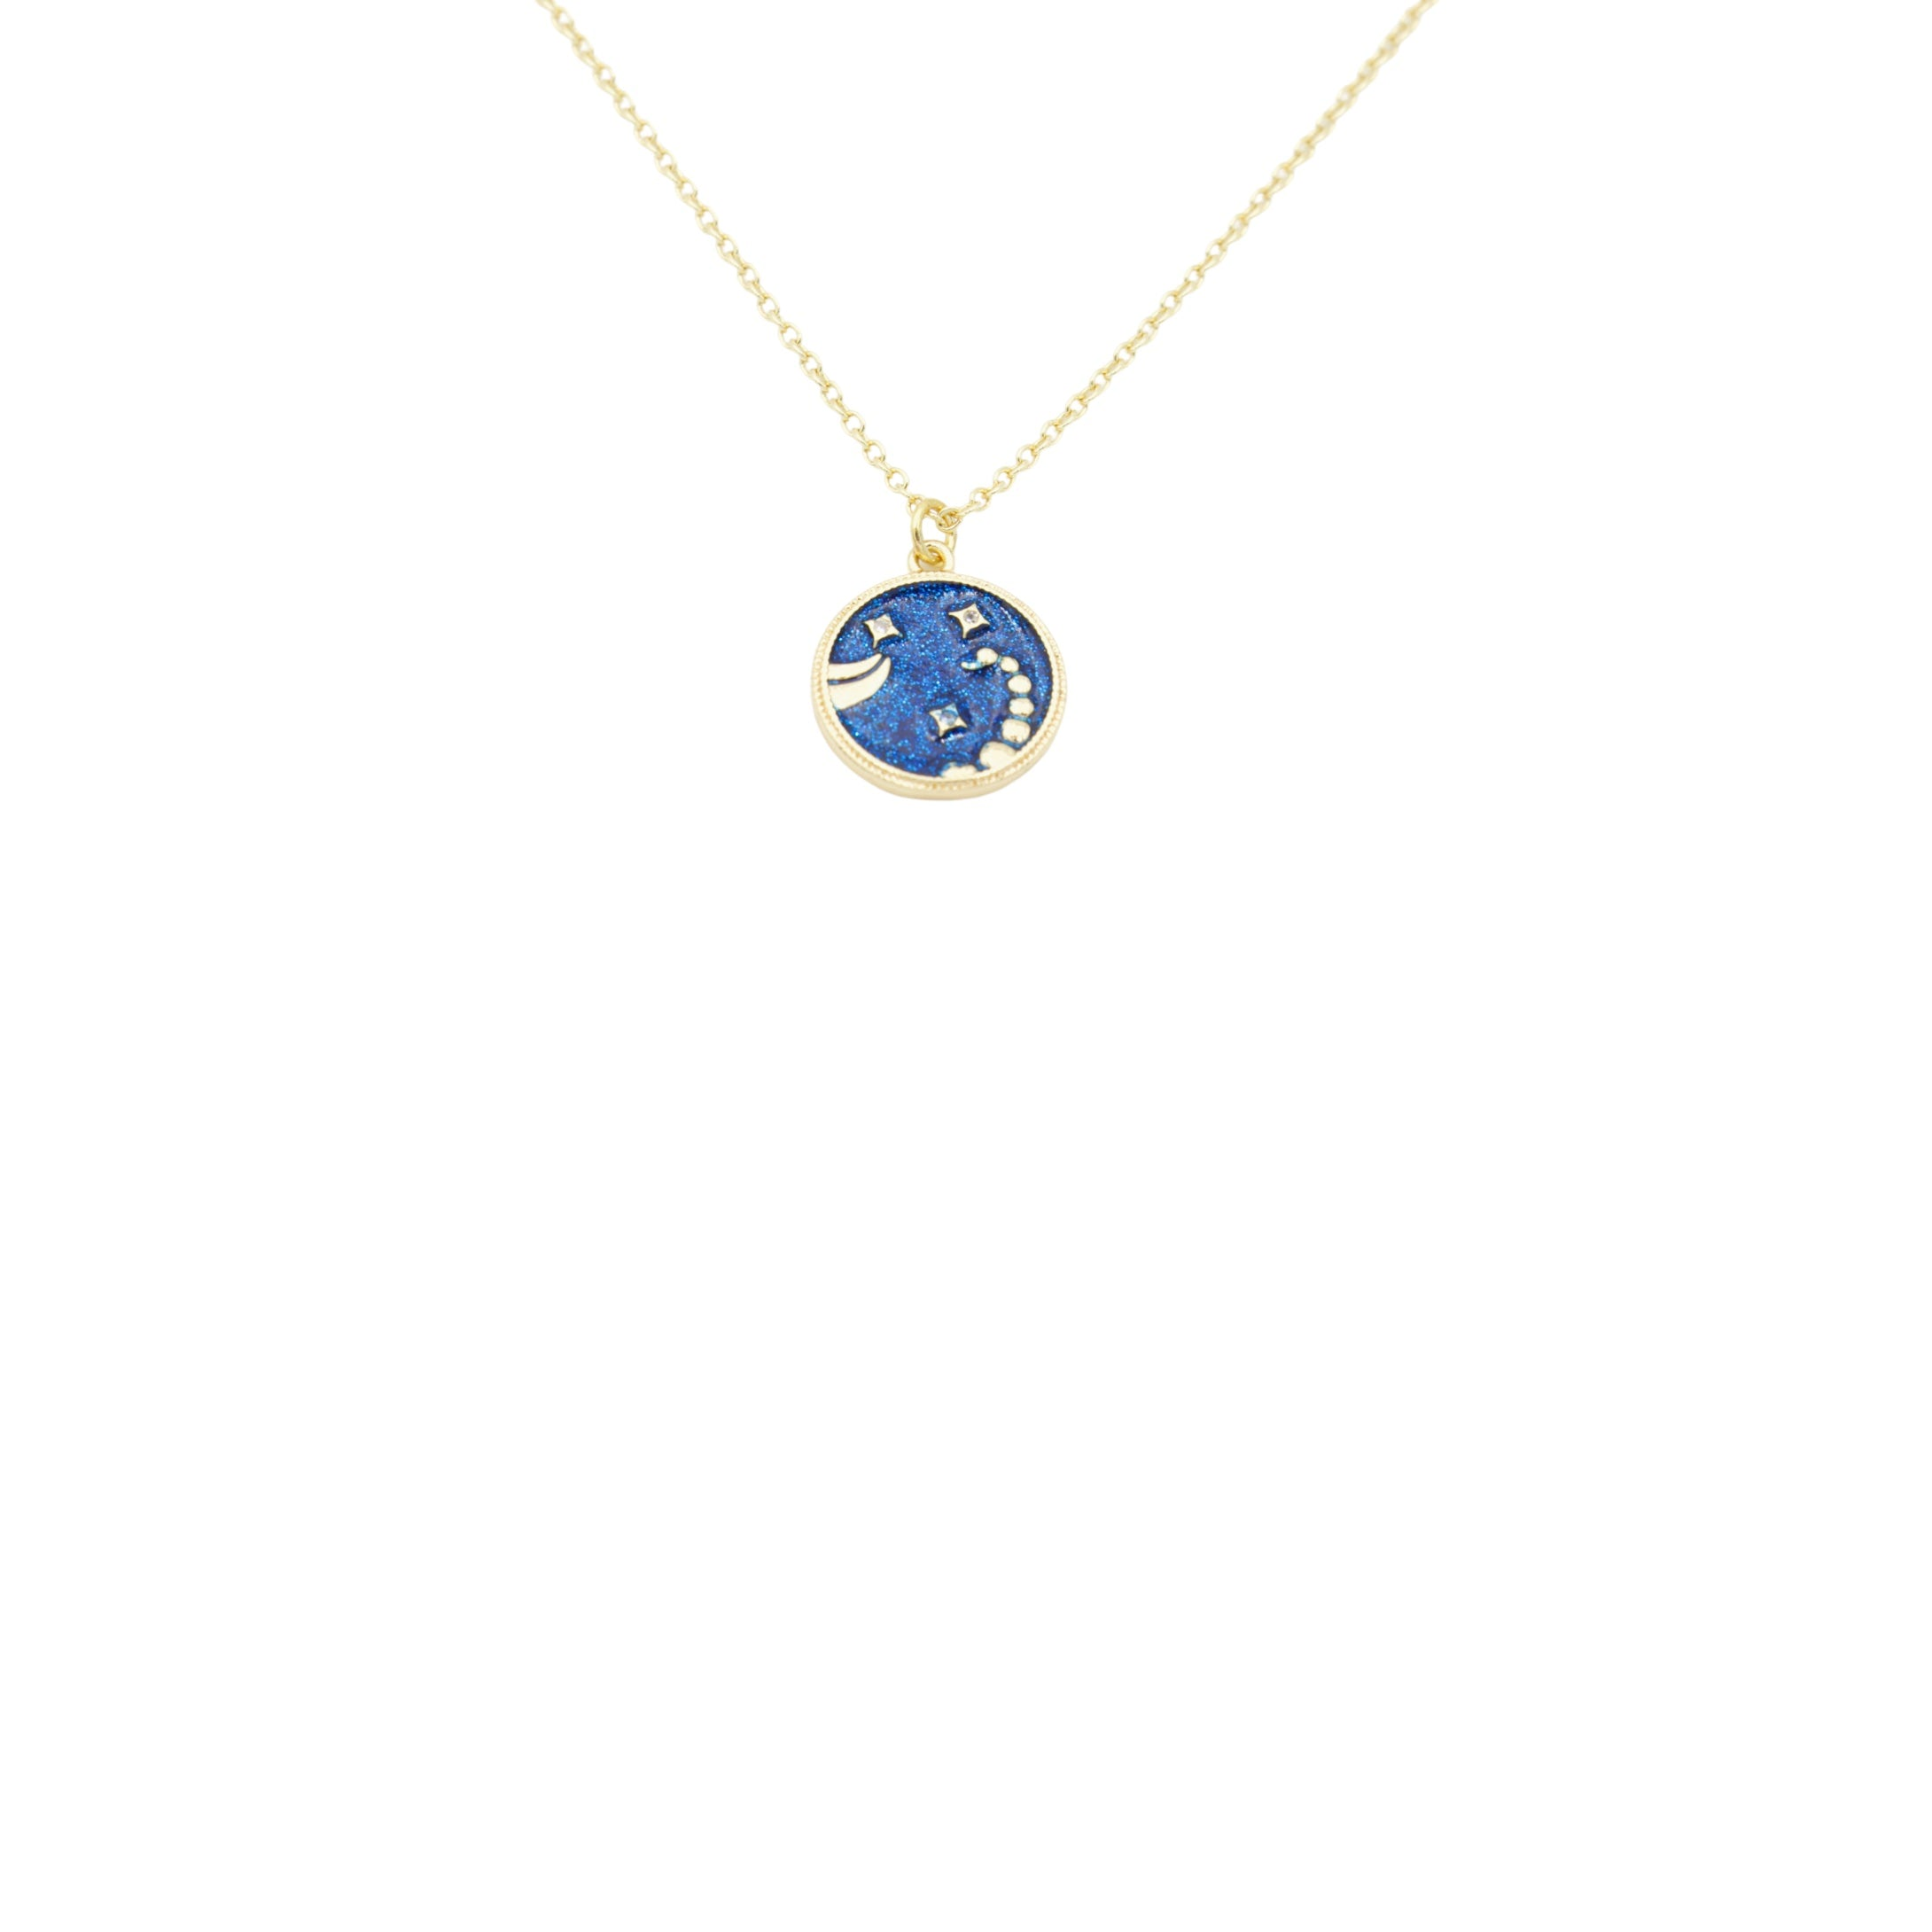 AW Boutique's Zodiac Astro Coin is a dainty pendant full of sparkle and shine.  This piece adds a pop of colour to your everyday wear and at 18 inches is a great length to mix and layer your other chains with.  Proudly wear either your own star sign or the star sign of a loved one close to your heart.  Zodiac shown is Scorpio.